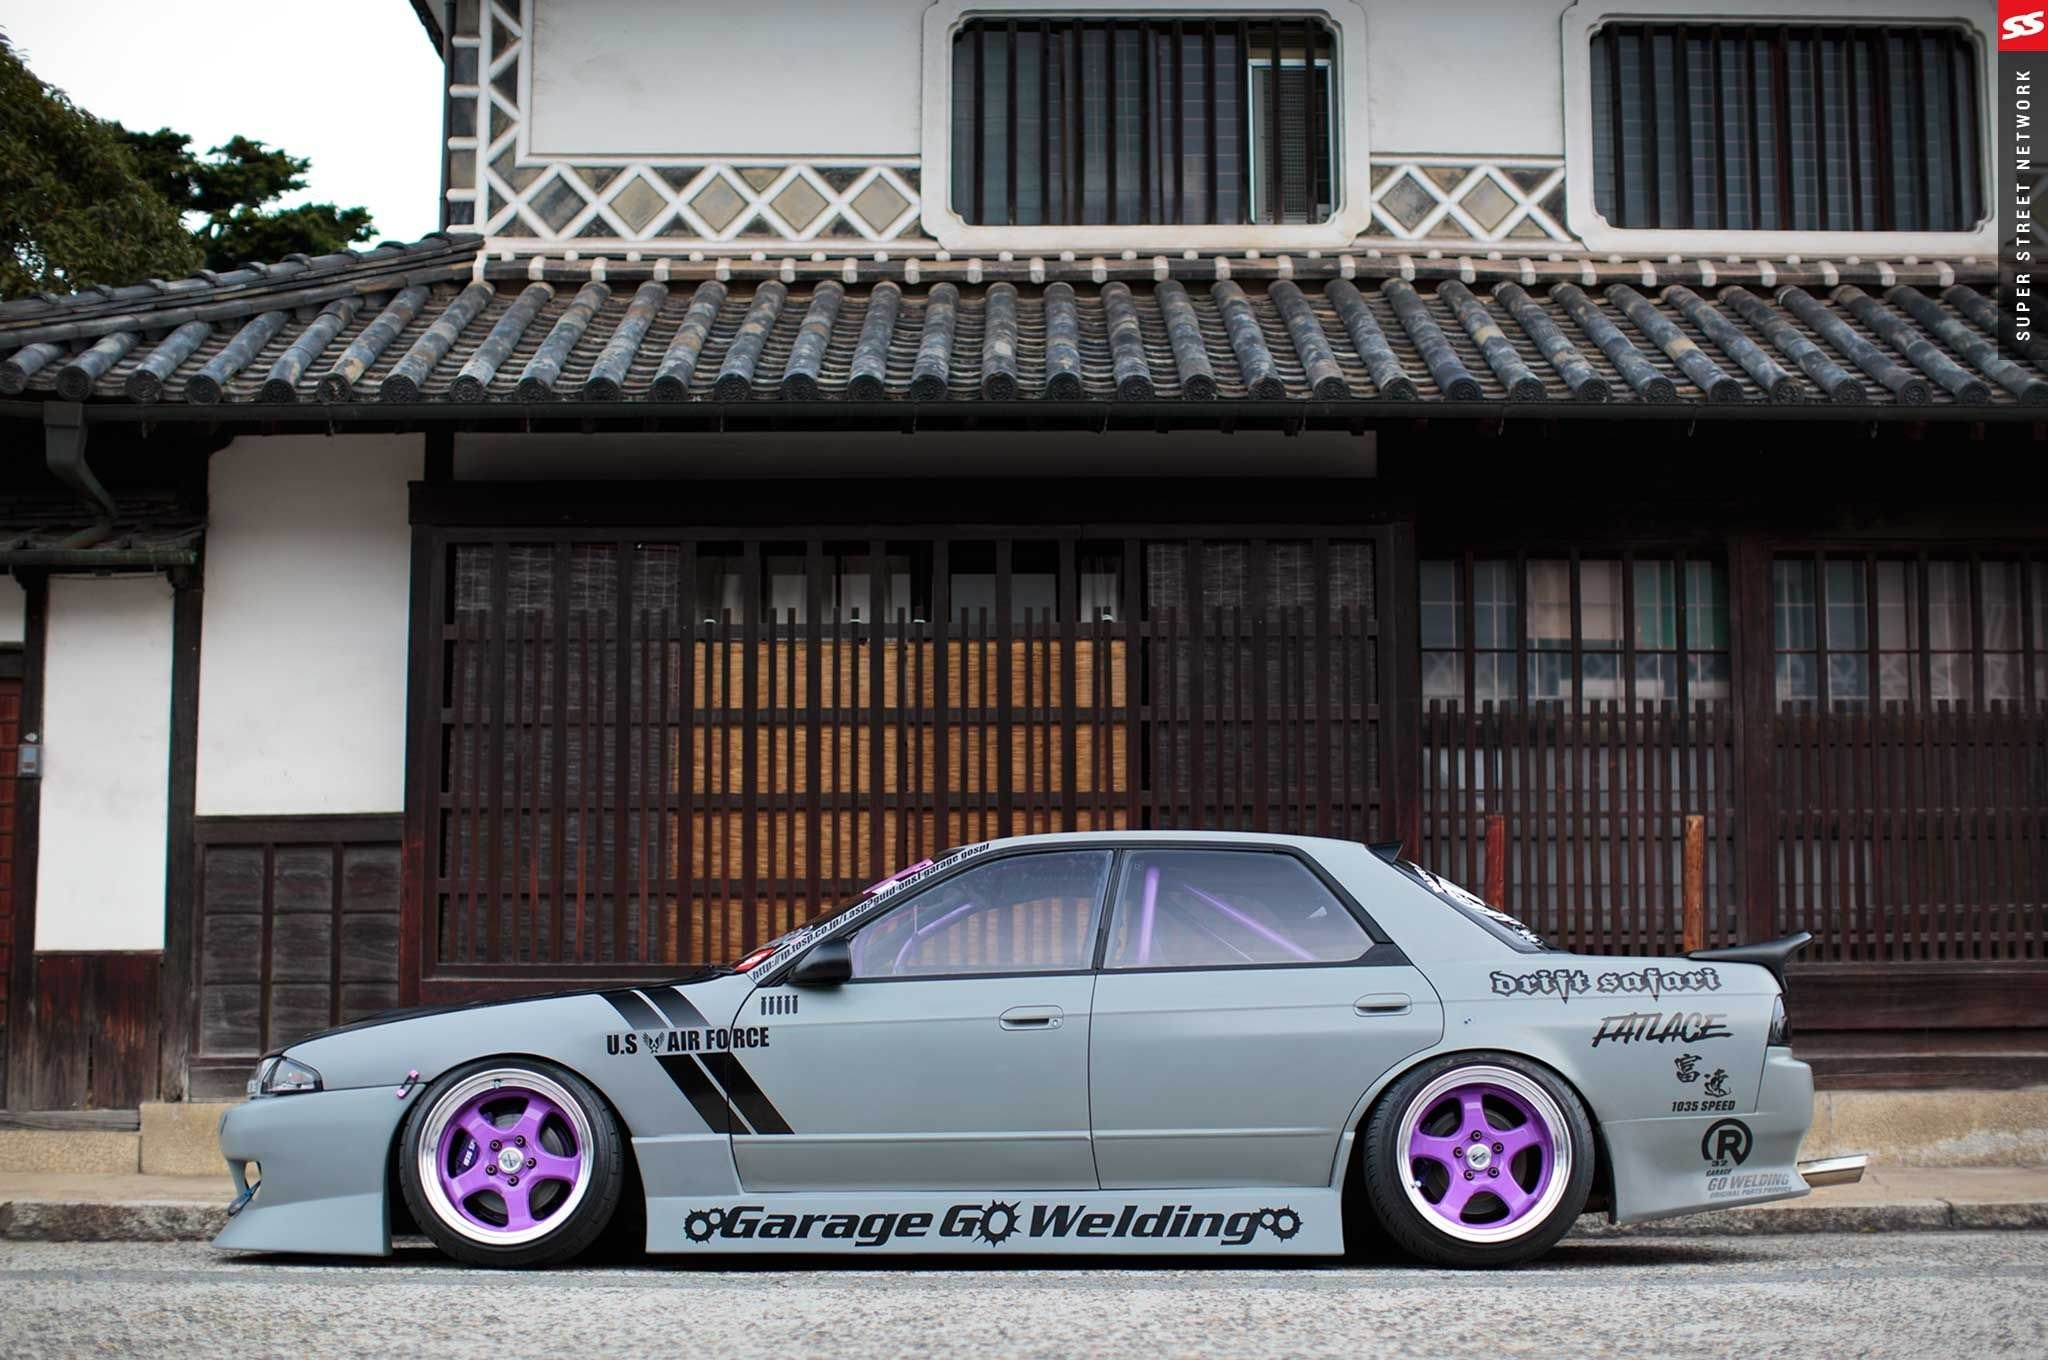 2048x1360 1991 nissan r32 skyline sedan cars modified wallpaper |  | 805060  | WallpaperUP